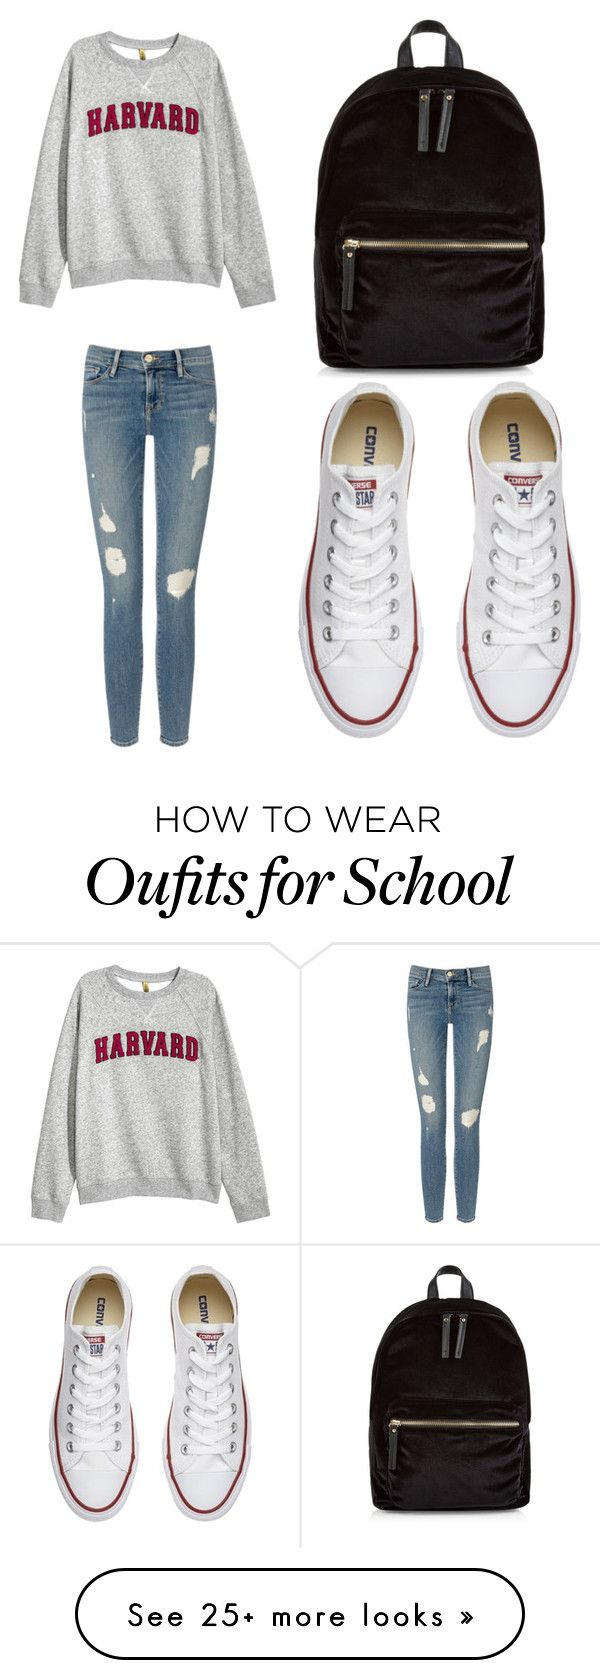 Girly outfits for school tumblr